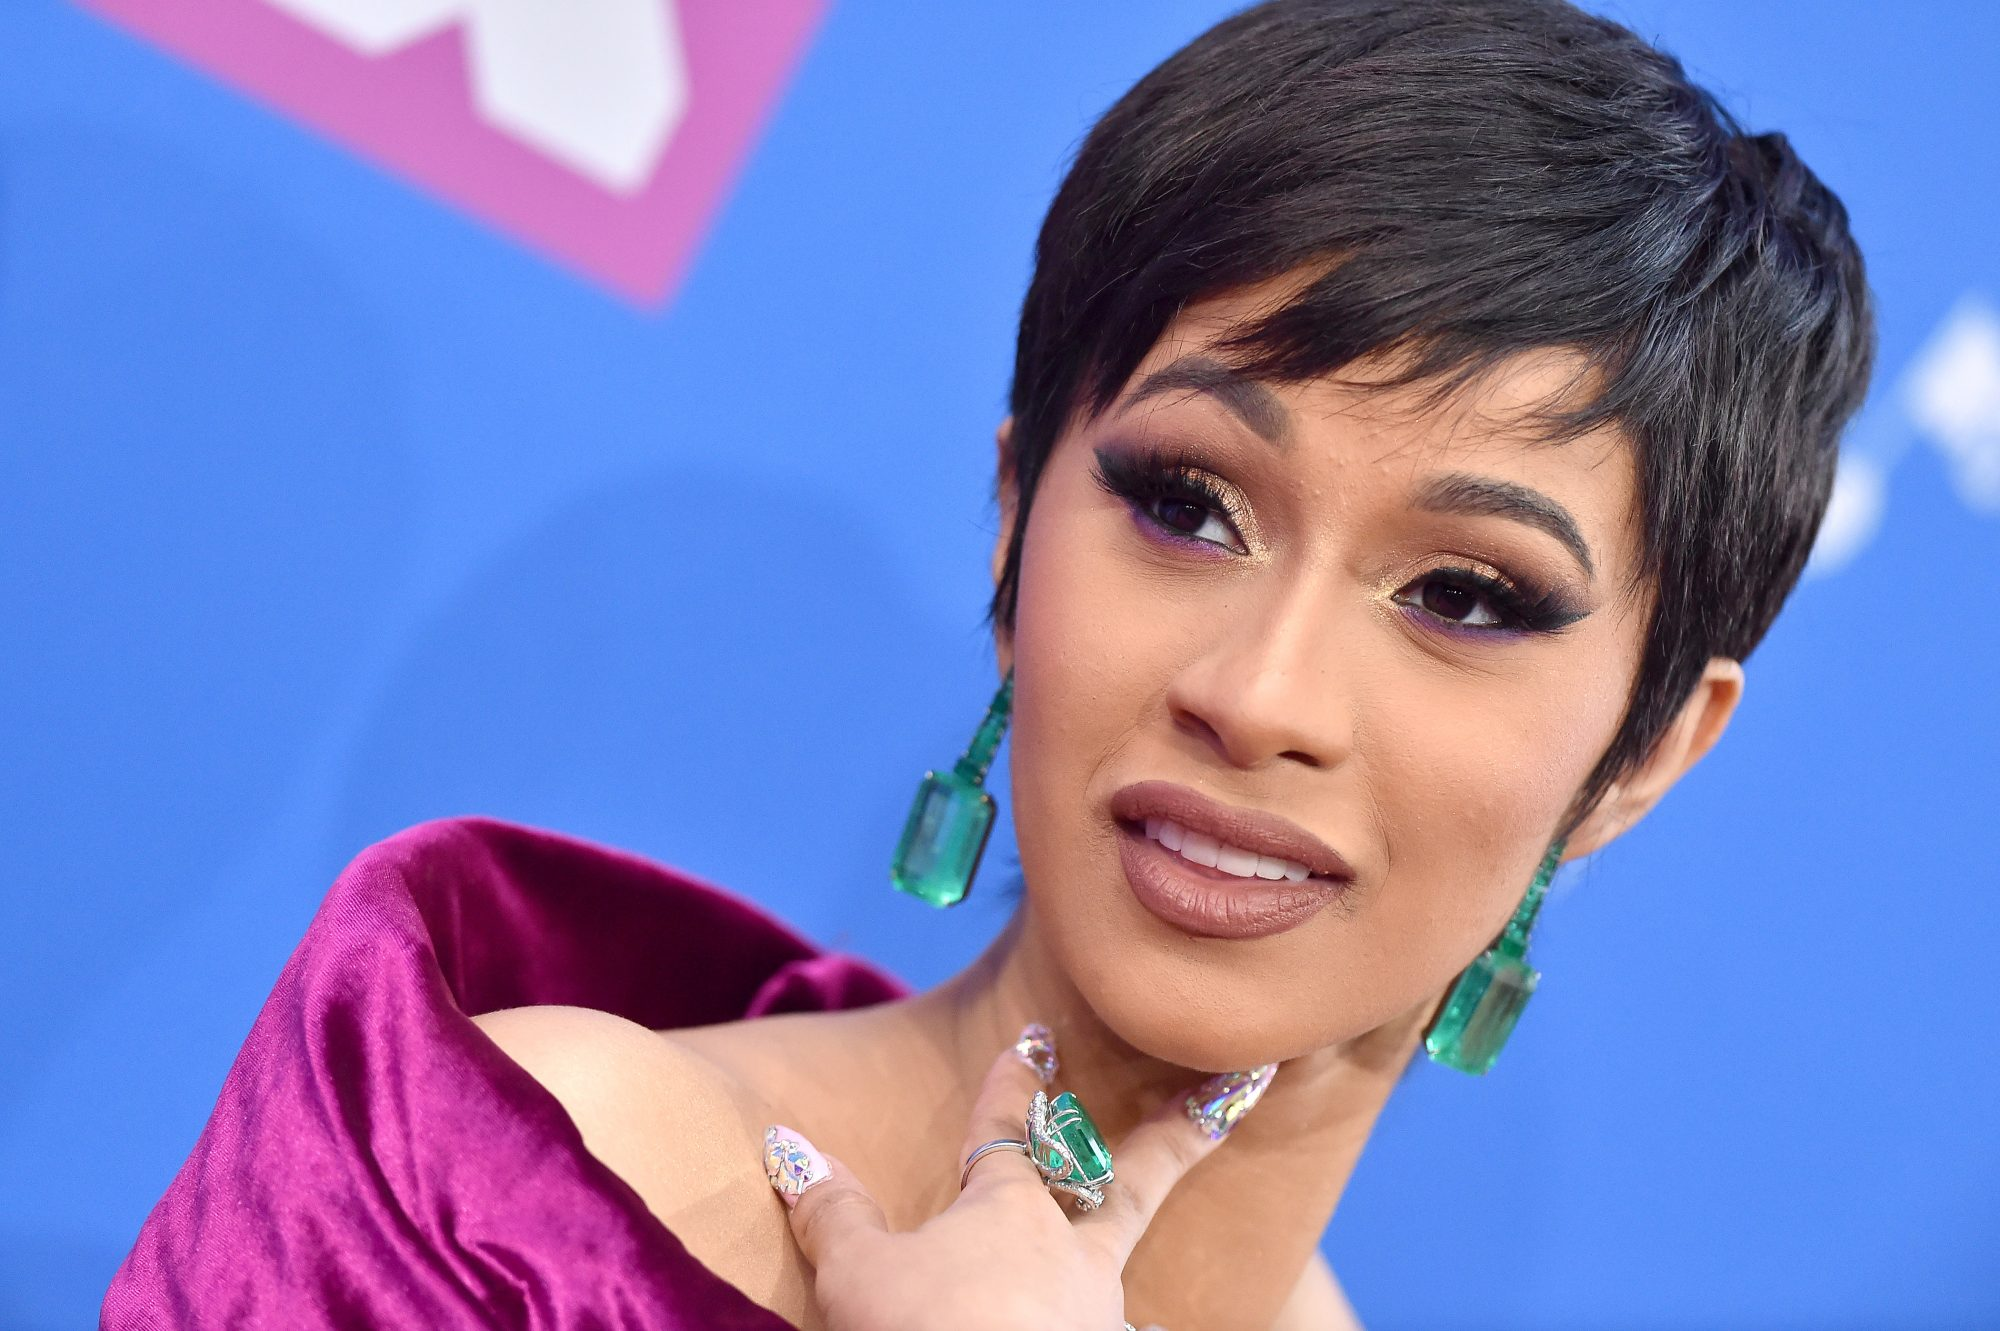 Cardi B Says She's Never 'Getting Surgery Again' After Canceling Shows Due to Liposuction